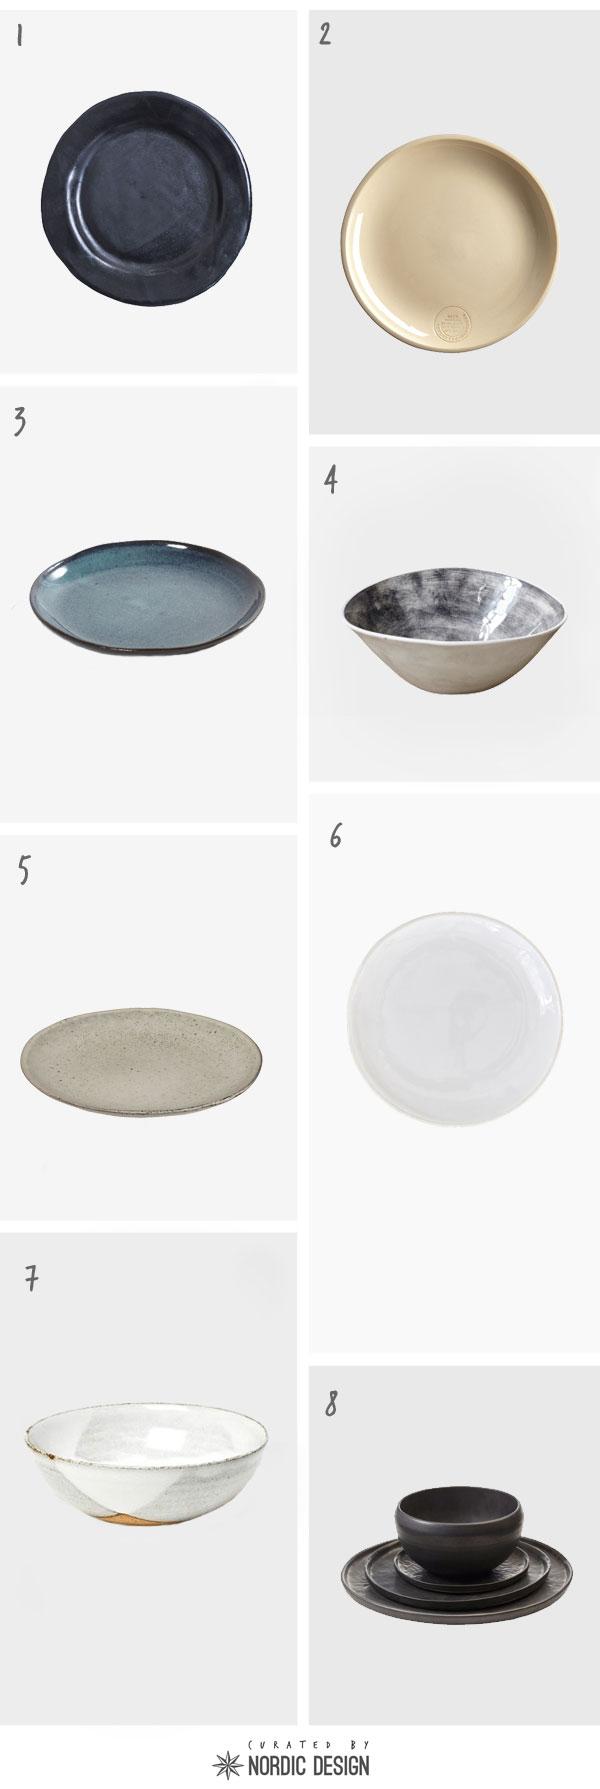 Rustic-ceramic-tableware